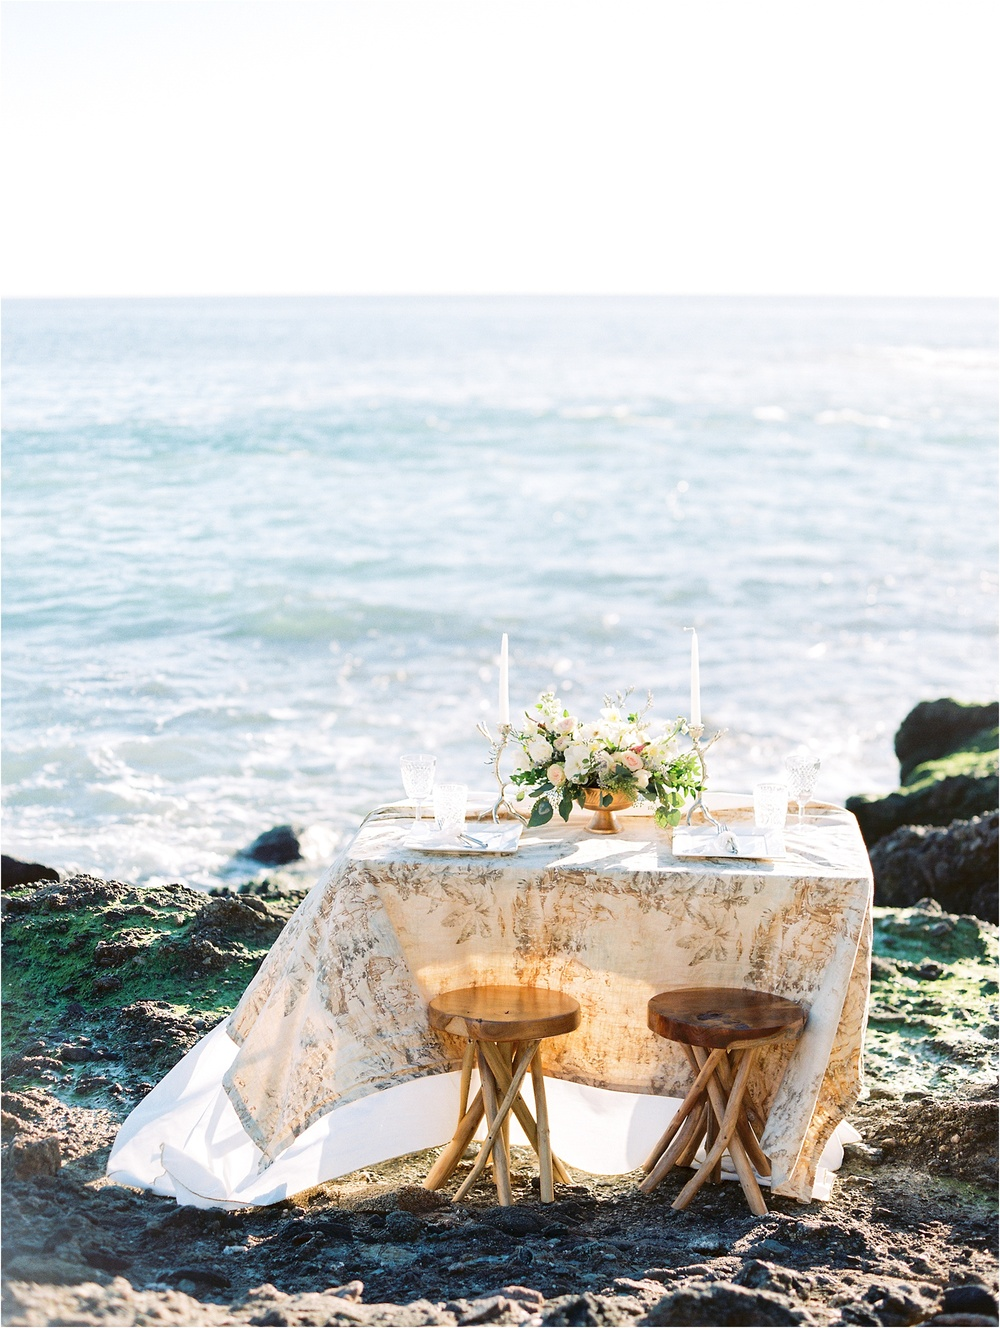 victoria-beach-wedding-inspiration-4.jpg